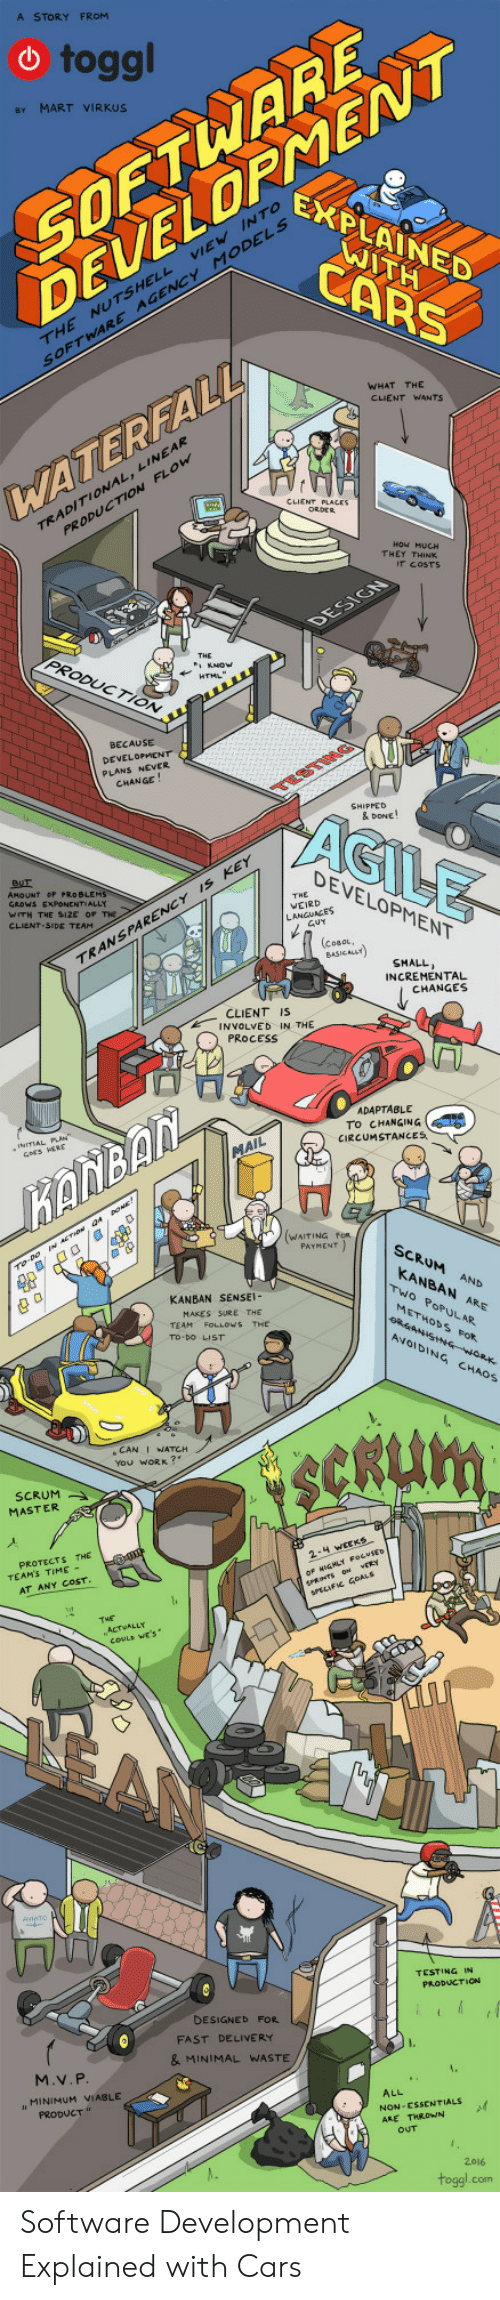 """Watch You: A STORY FROM  SOETWARE  ELOPNENNT  toggl  e MART VIRKUS  EXPLAINED  INTo  MODELS  ATH  CARS  THE NUTSHELL  SOFTWARE  AGENCY  WHAT THE  CLIENT WANTS  INEAR  WATEREAL  TRADITIONAL, L  PRODUCTIon  THEY THINK  IT COSTS  PRODUCTION  BECAUSE  DEVELOPMENT  PLANS NEVER  CHANGE  AGILE  & DONE!  DEVELOPMENT  AMOUNT OF PRO BLEM  GROWS EXPONENTIALLY  WITH THE SIZE OF  CLIENT-SIDE TEAM  s KEY  THE  WEIRD  PARENCY  RAN S  SMALL  INCREMENTAL  CHANGES  CLIENT IS  INVOLVED IN THE  PROCESS  ADAPTABLE  To CHANGING  CIRCUMSTANCES  ANBAN  WAITING FoR  SCRUM AND  KANBAN ARE  KANBAN SENSEI  Two PoPULAR.  MAKES SURE THE  TEAM FOLLOWS THE  To-DO LIST  METHODs FoR  AVOIDING CHAOS  e CAN I WATCH  You WORK?  SCRUM  MASTER  PROTECTS THE  TEAMS TIME -  AT ANY COST  ㄇ  TESTING IN  PRODUCTION  DESIGNEb FOR  FAST DELIVERY  & MINIMAL WASTE  M.V. P  MINIMUM VIABLE  PRODUCT""""  ALL  NON -ESSENTIALS  2016  toggl.com Software Development Explained with Cars"""